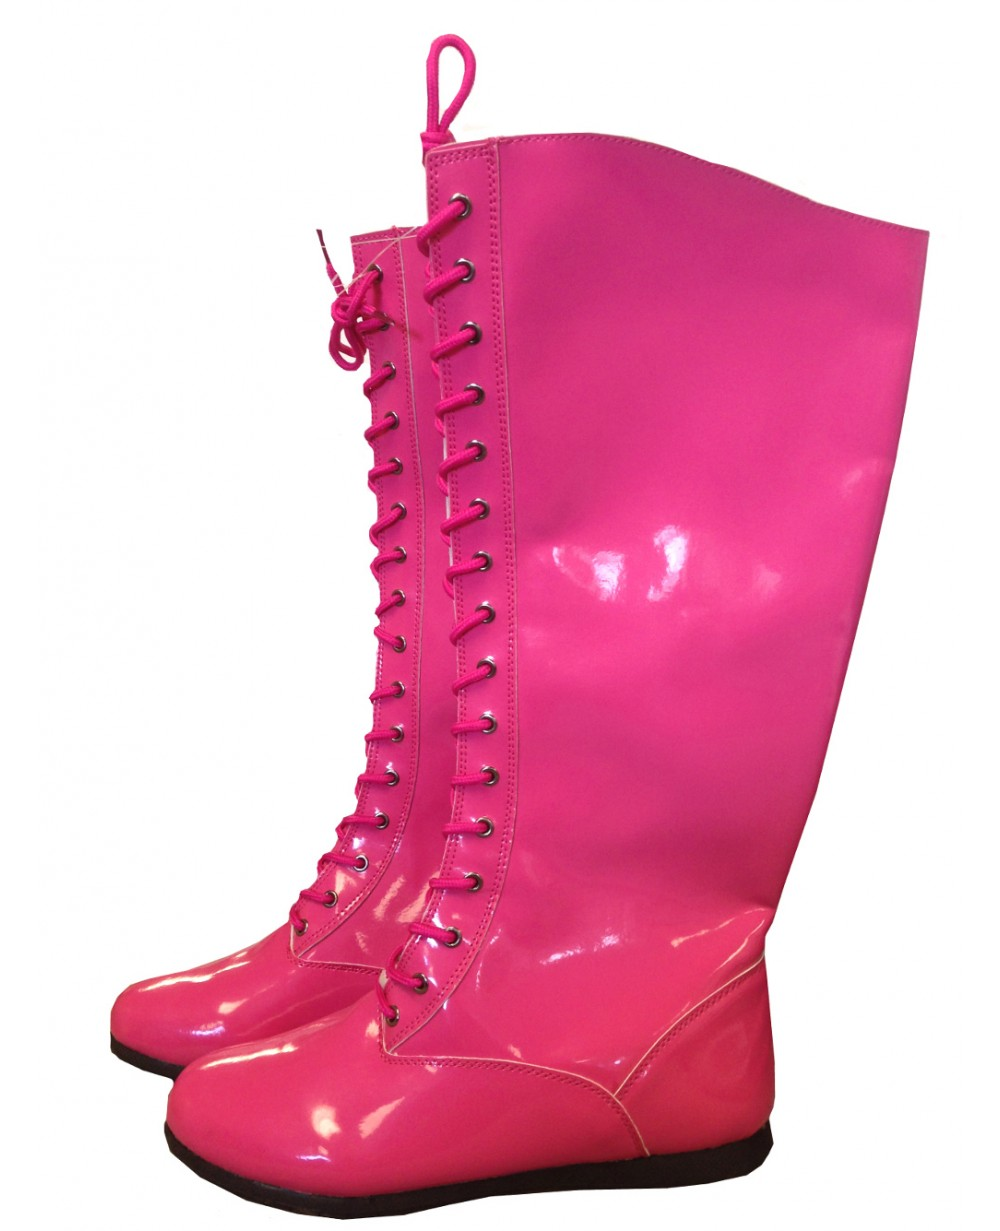 Pink Adult Wrestling Boots